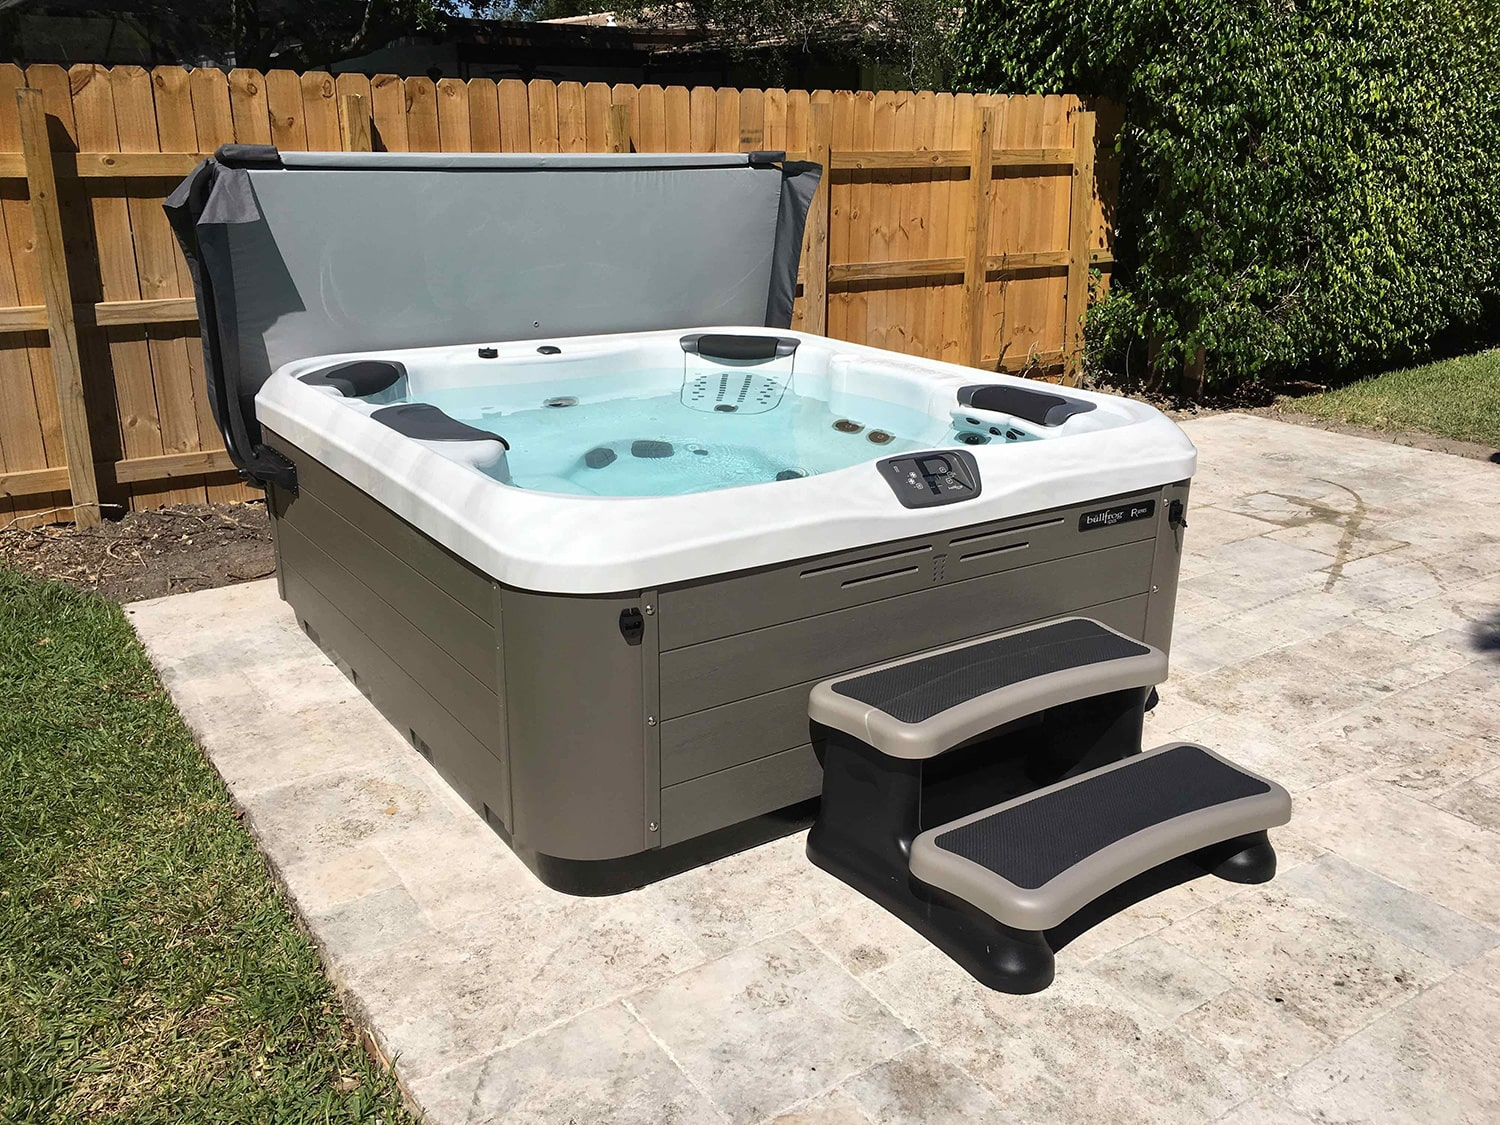 Bullfrog Spas in Fresno, California